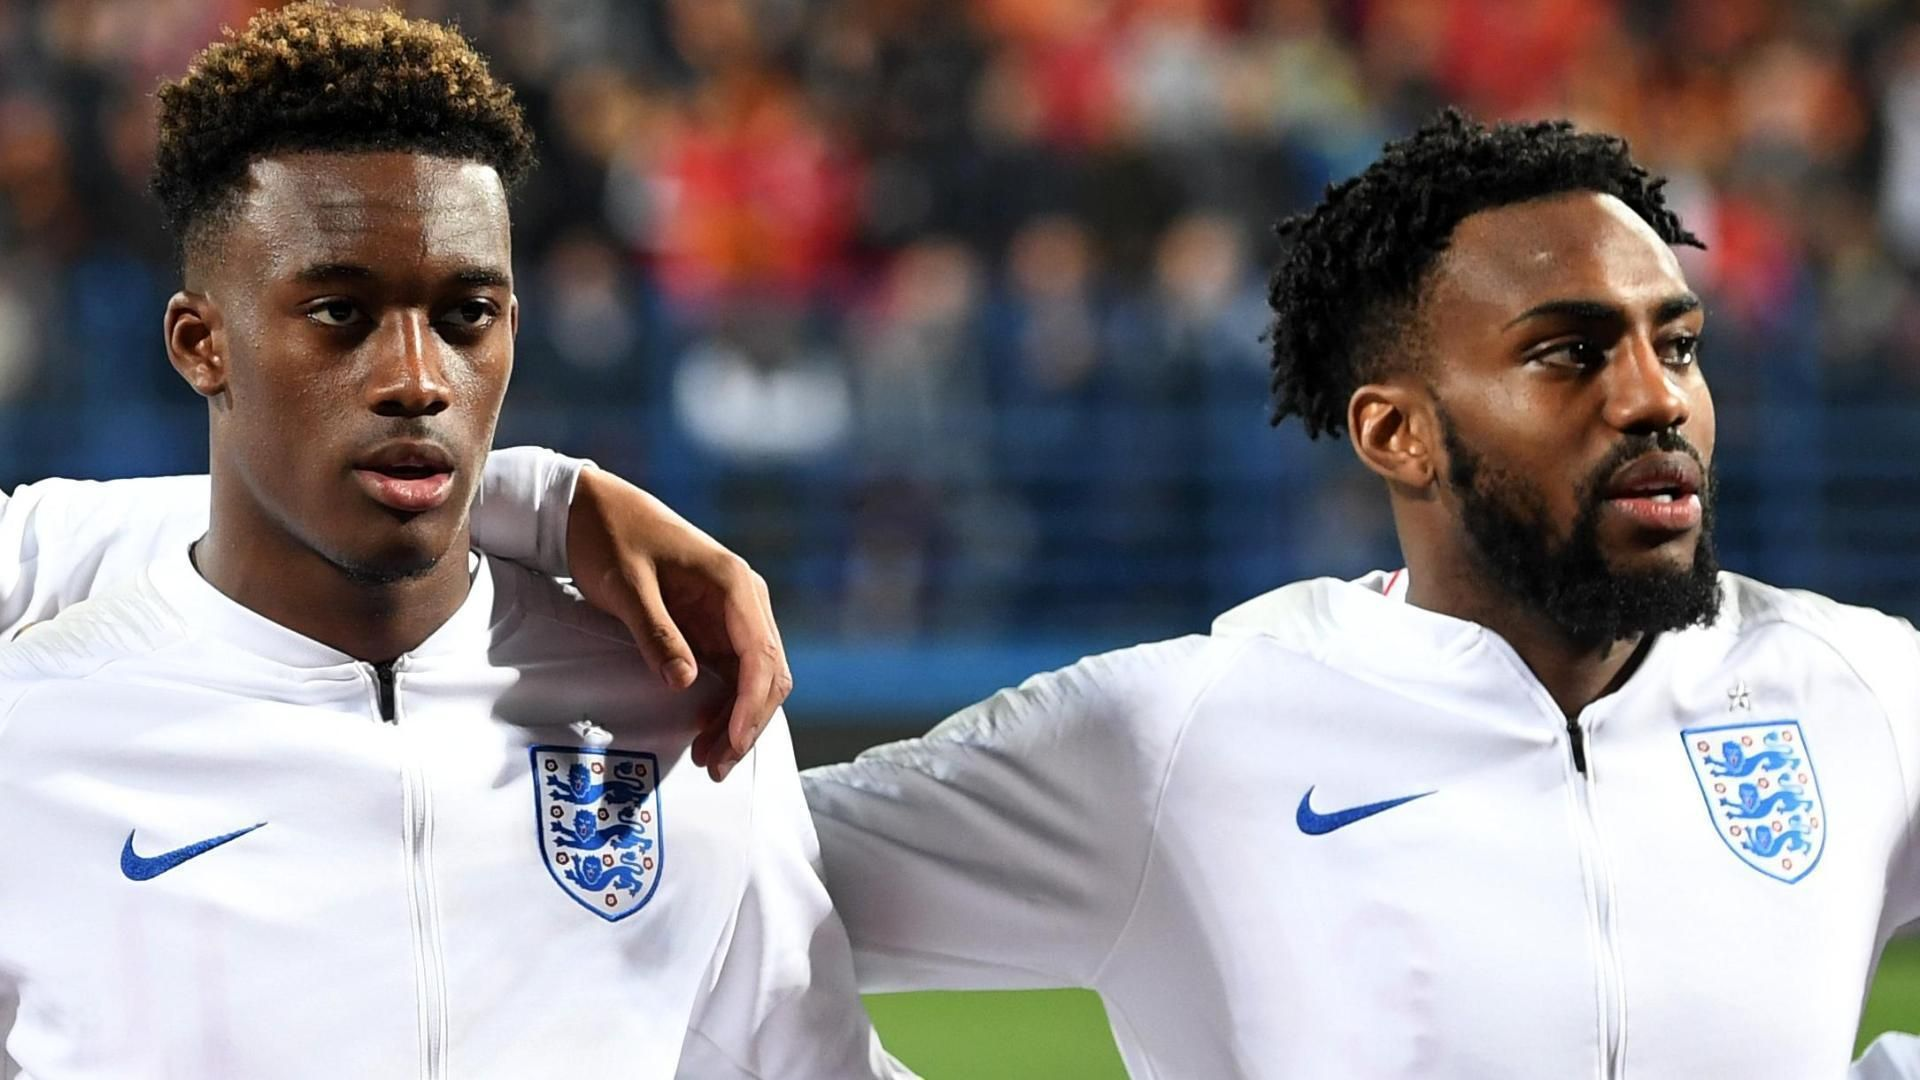 Hudson-Odoi: Racism is unacceptable, we are equal